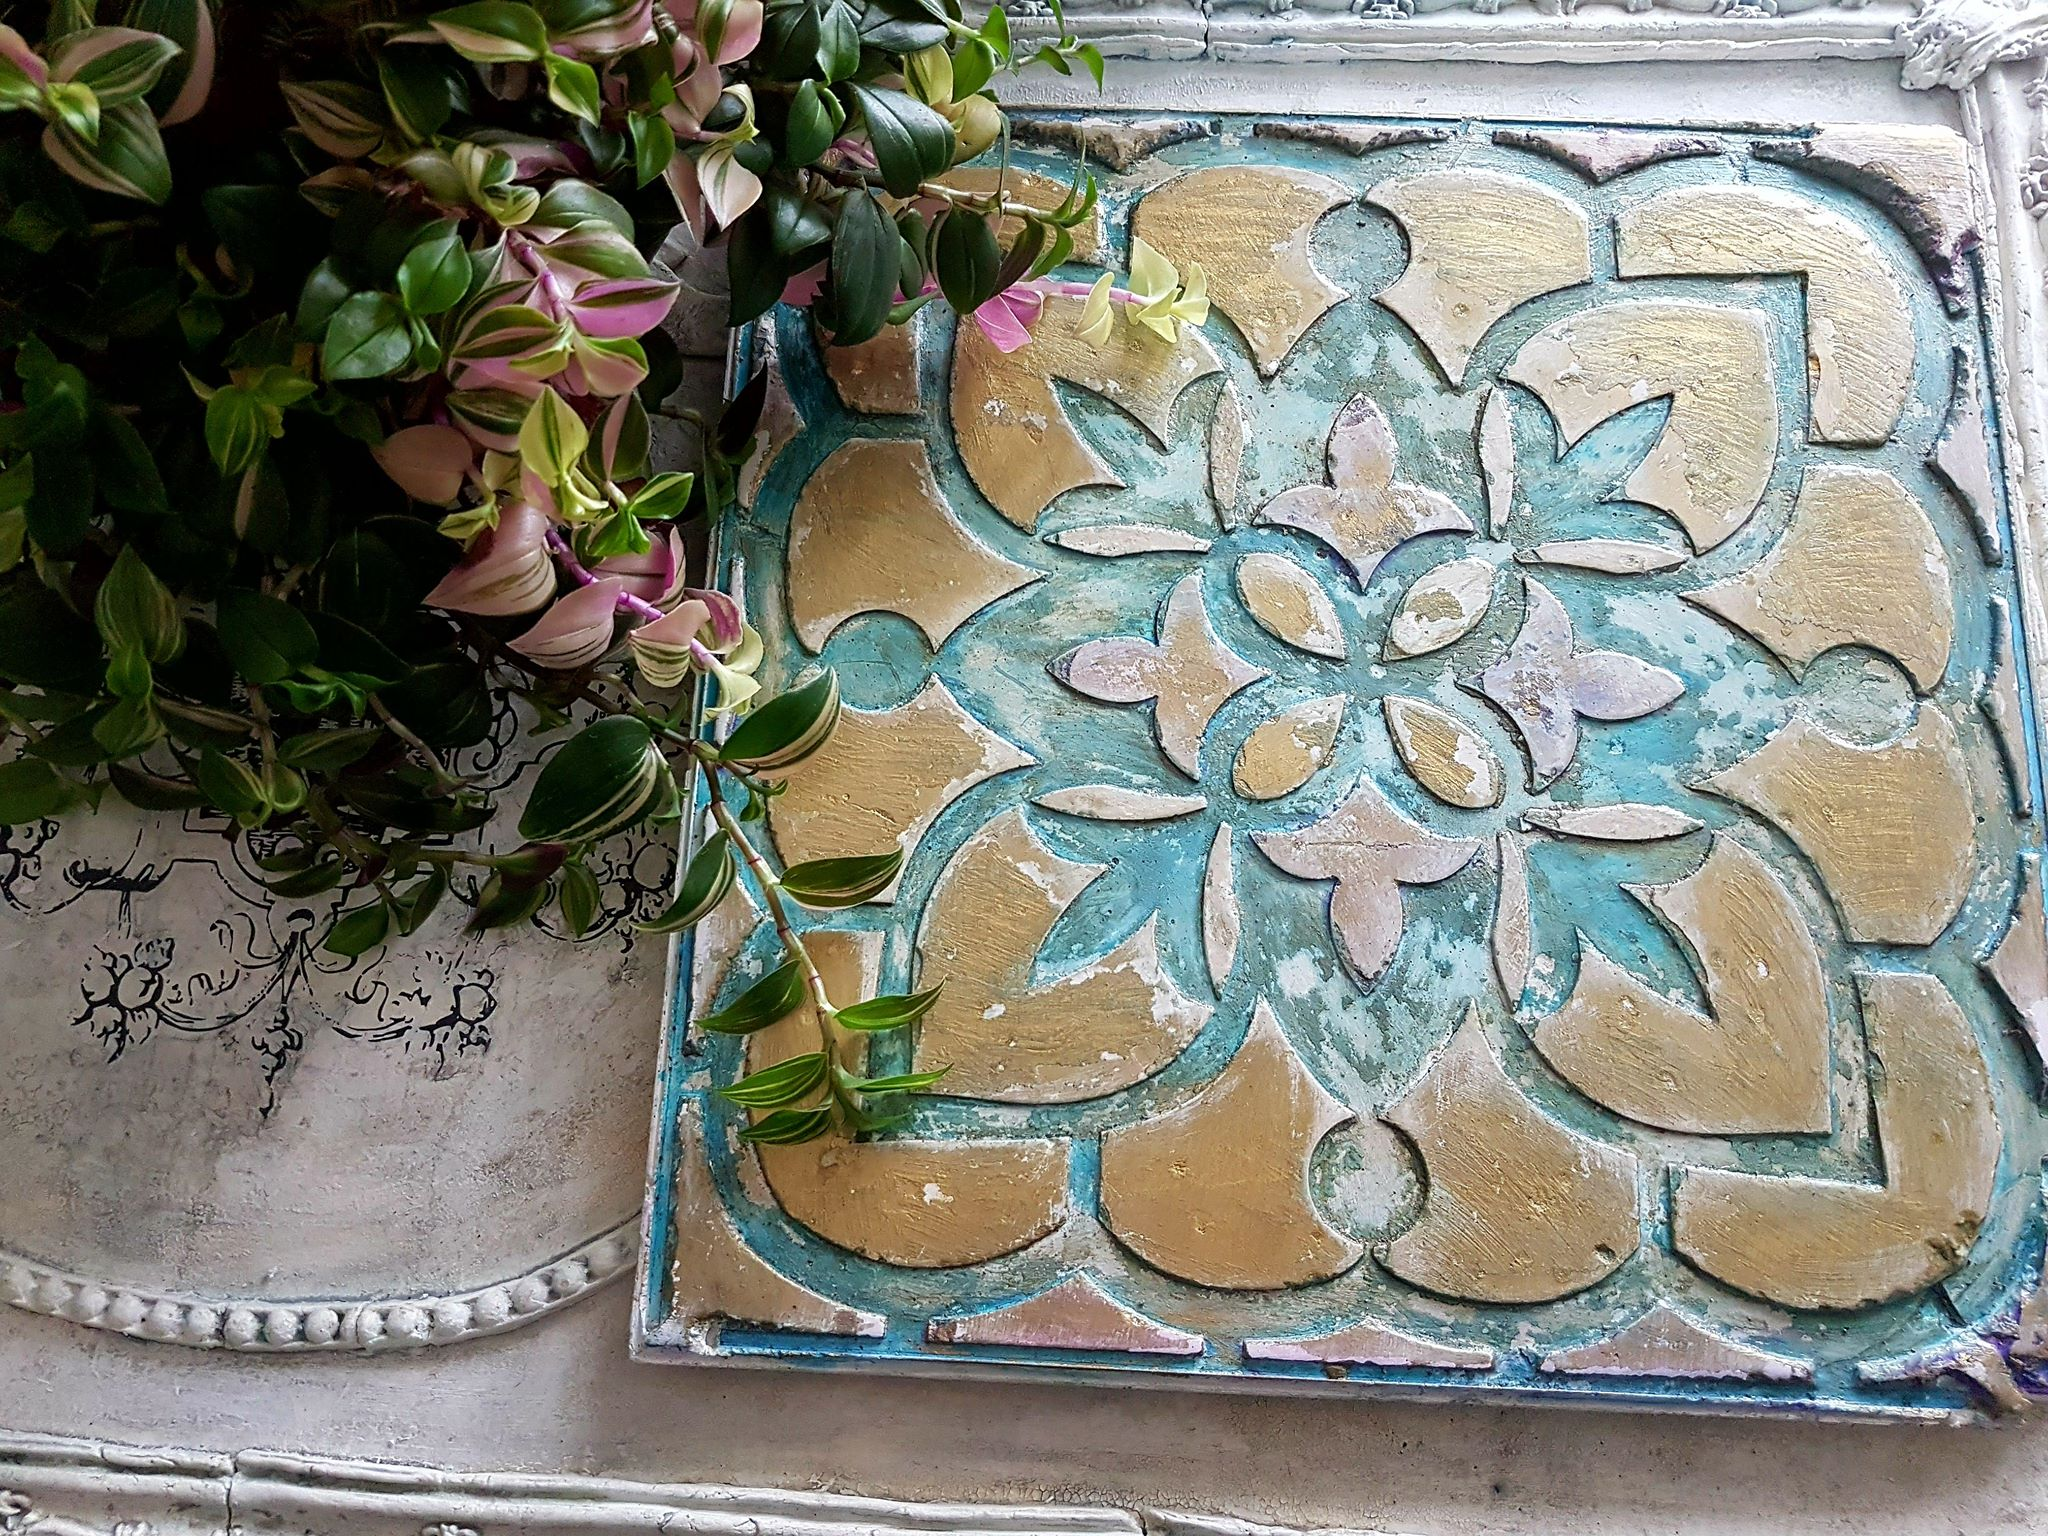 Are you a gardener? Or do you need to add some personality to your landscaping? We are so excited to introduce our new concrete paver moulds. This new DIY tool is engineered to help create concrete stepping stones or pavers using concrete and stencil inserts to get the style you need for your outdoor living space. This example was created by our home decor team member,  Magdalena Salacinska of Secret Garden Chic . She added a mixture of paint colors to give them a bit more pizazz!